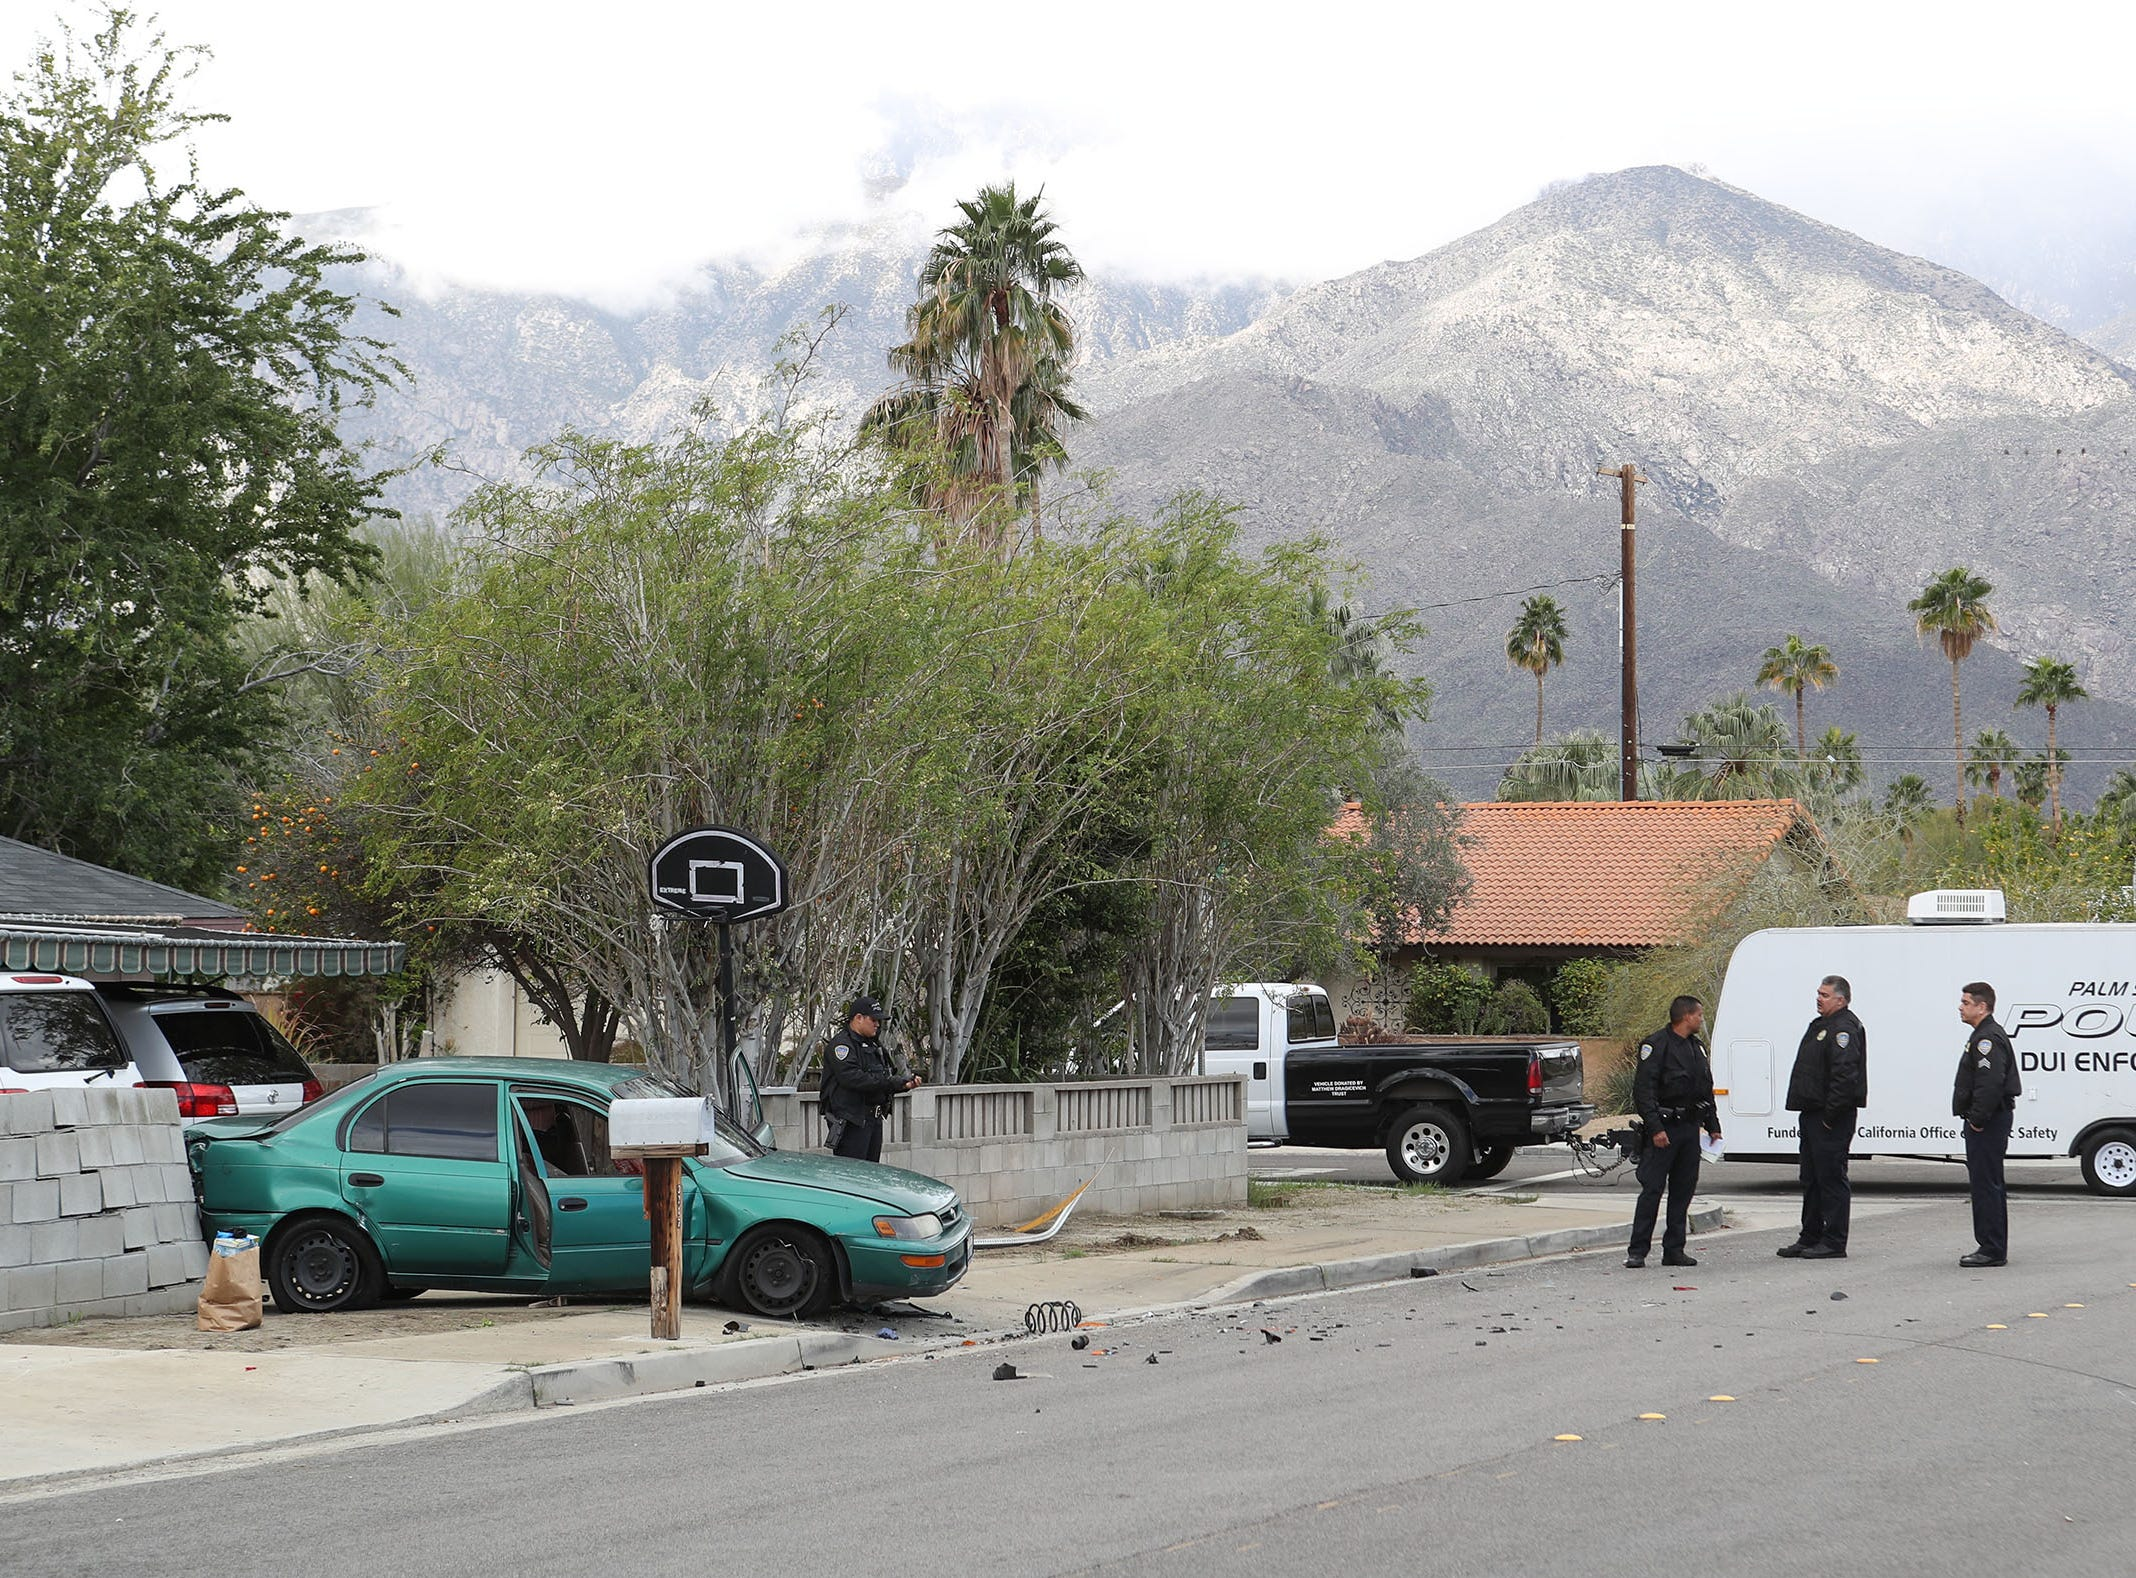 Police investigate the scene of an accident on Sunny Dunes Road in Palm Springs involving a green Toyota Corolla on February 4, 2019.